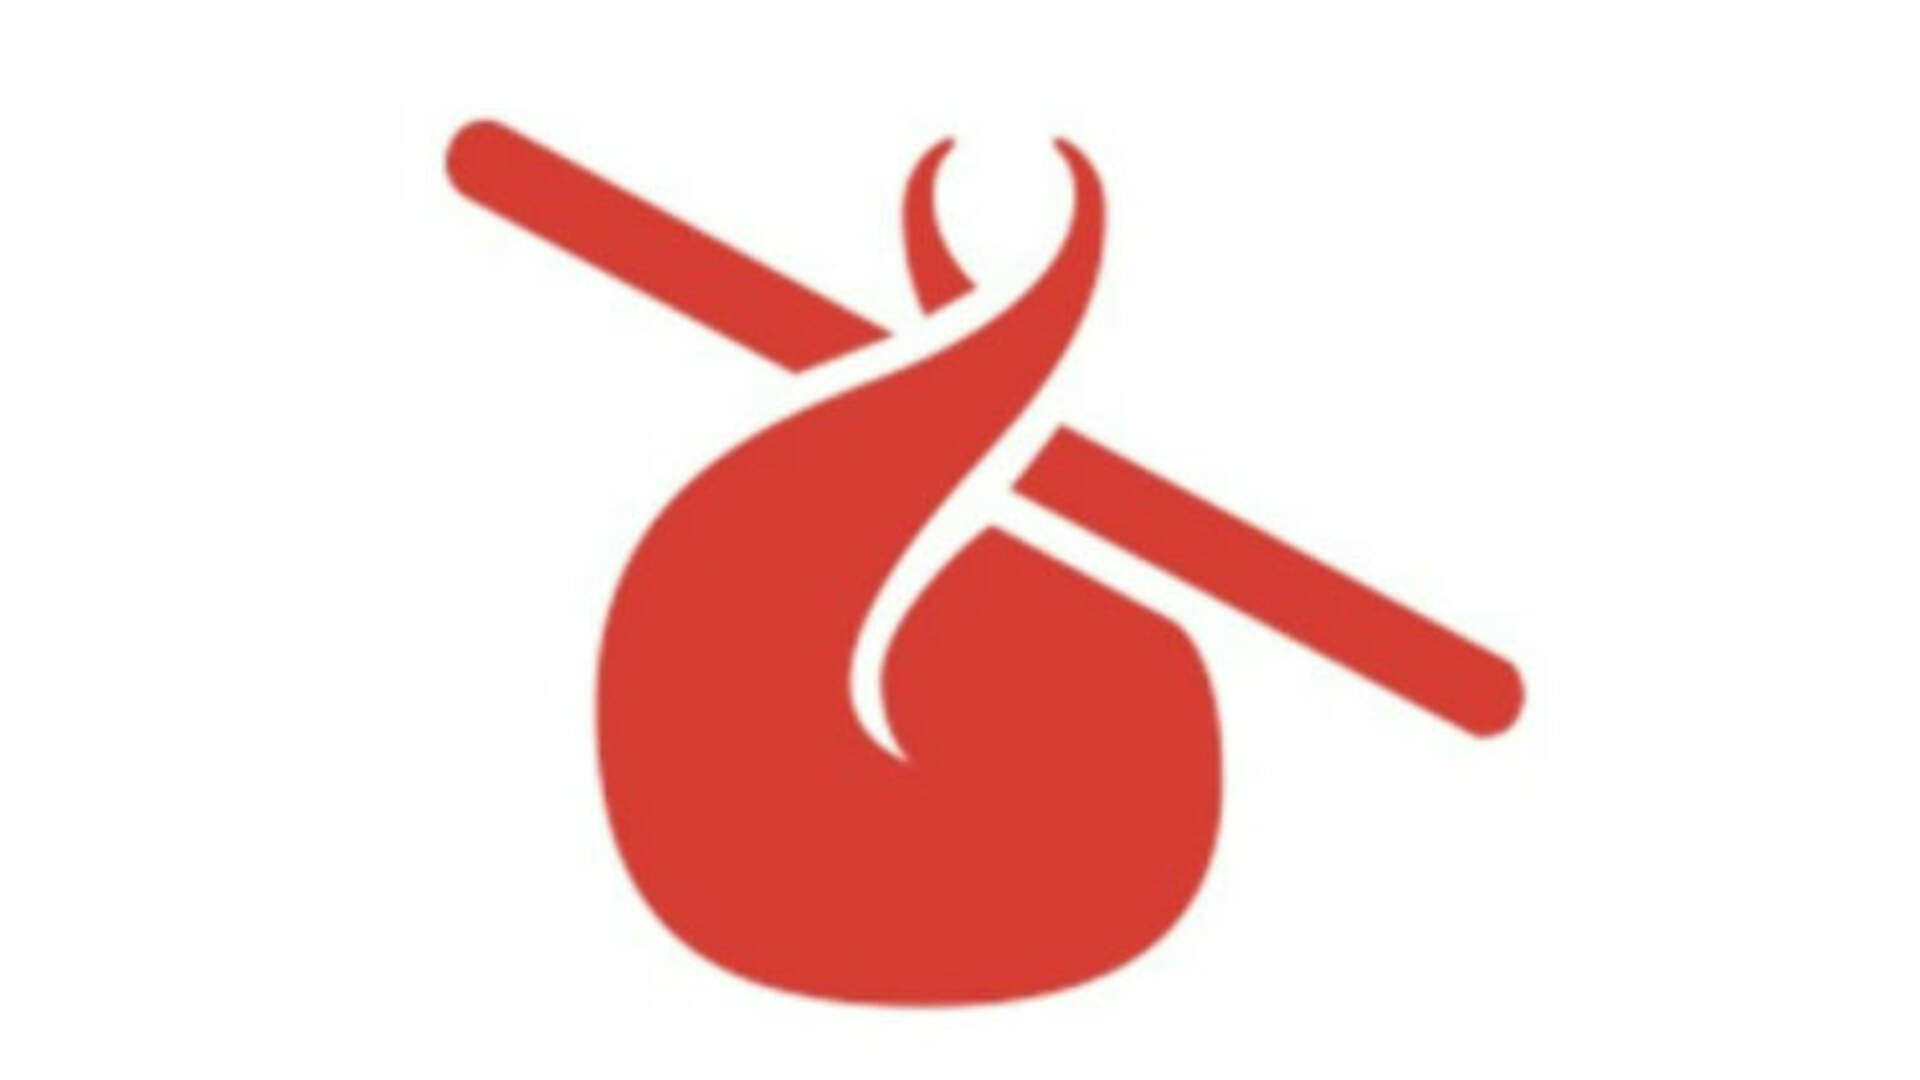 IGN's Purchase of Video Game Publisher Humble Bundle Raises Business Concerns [Update]